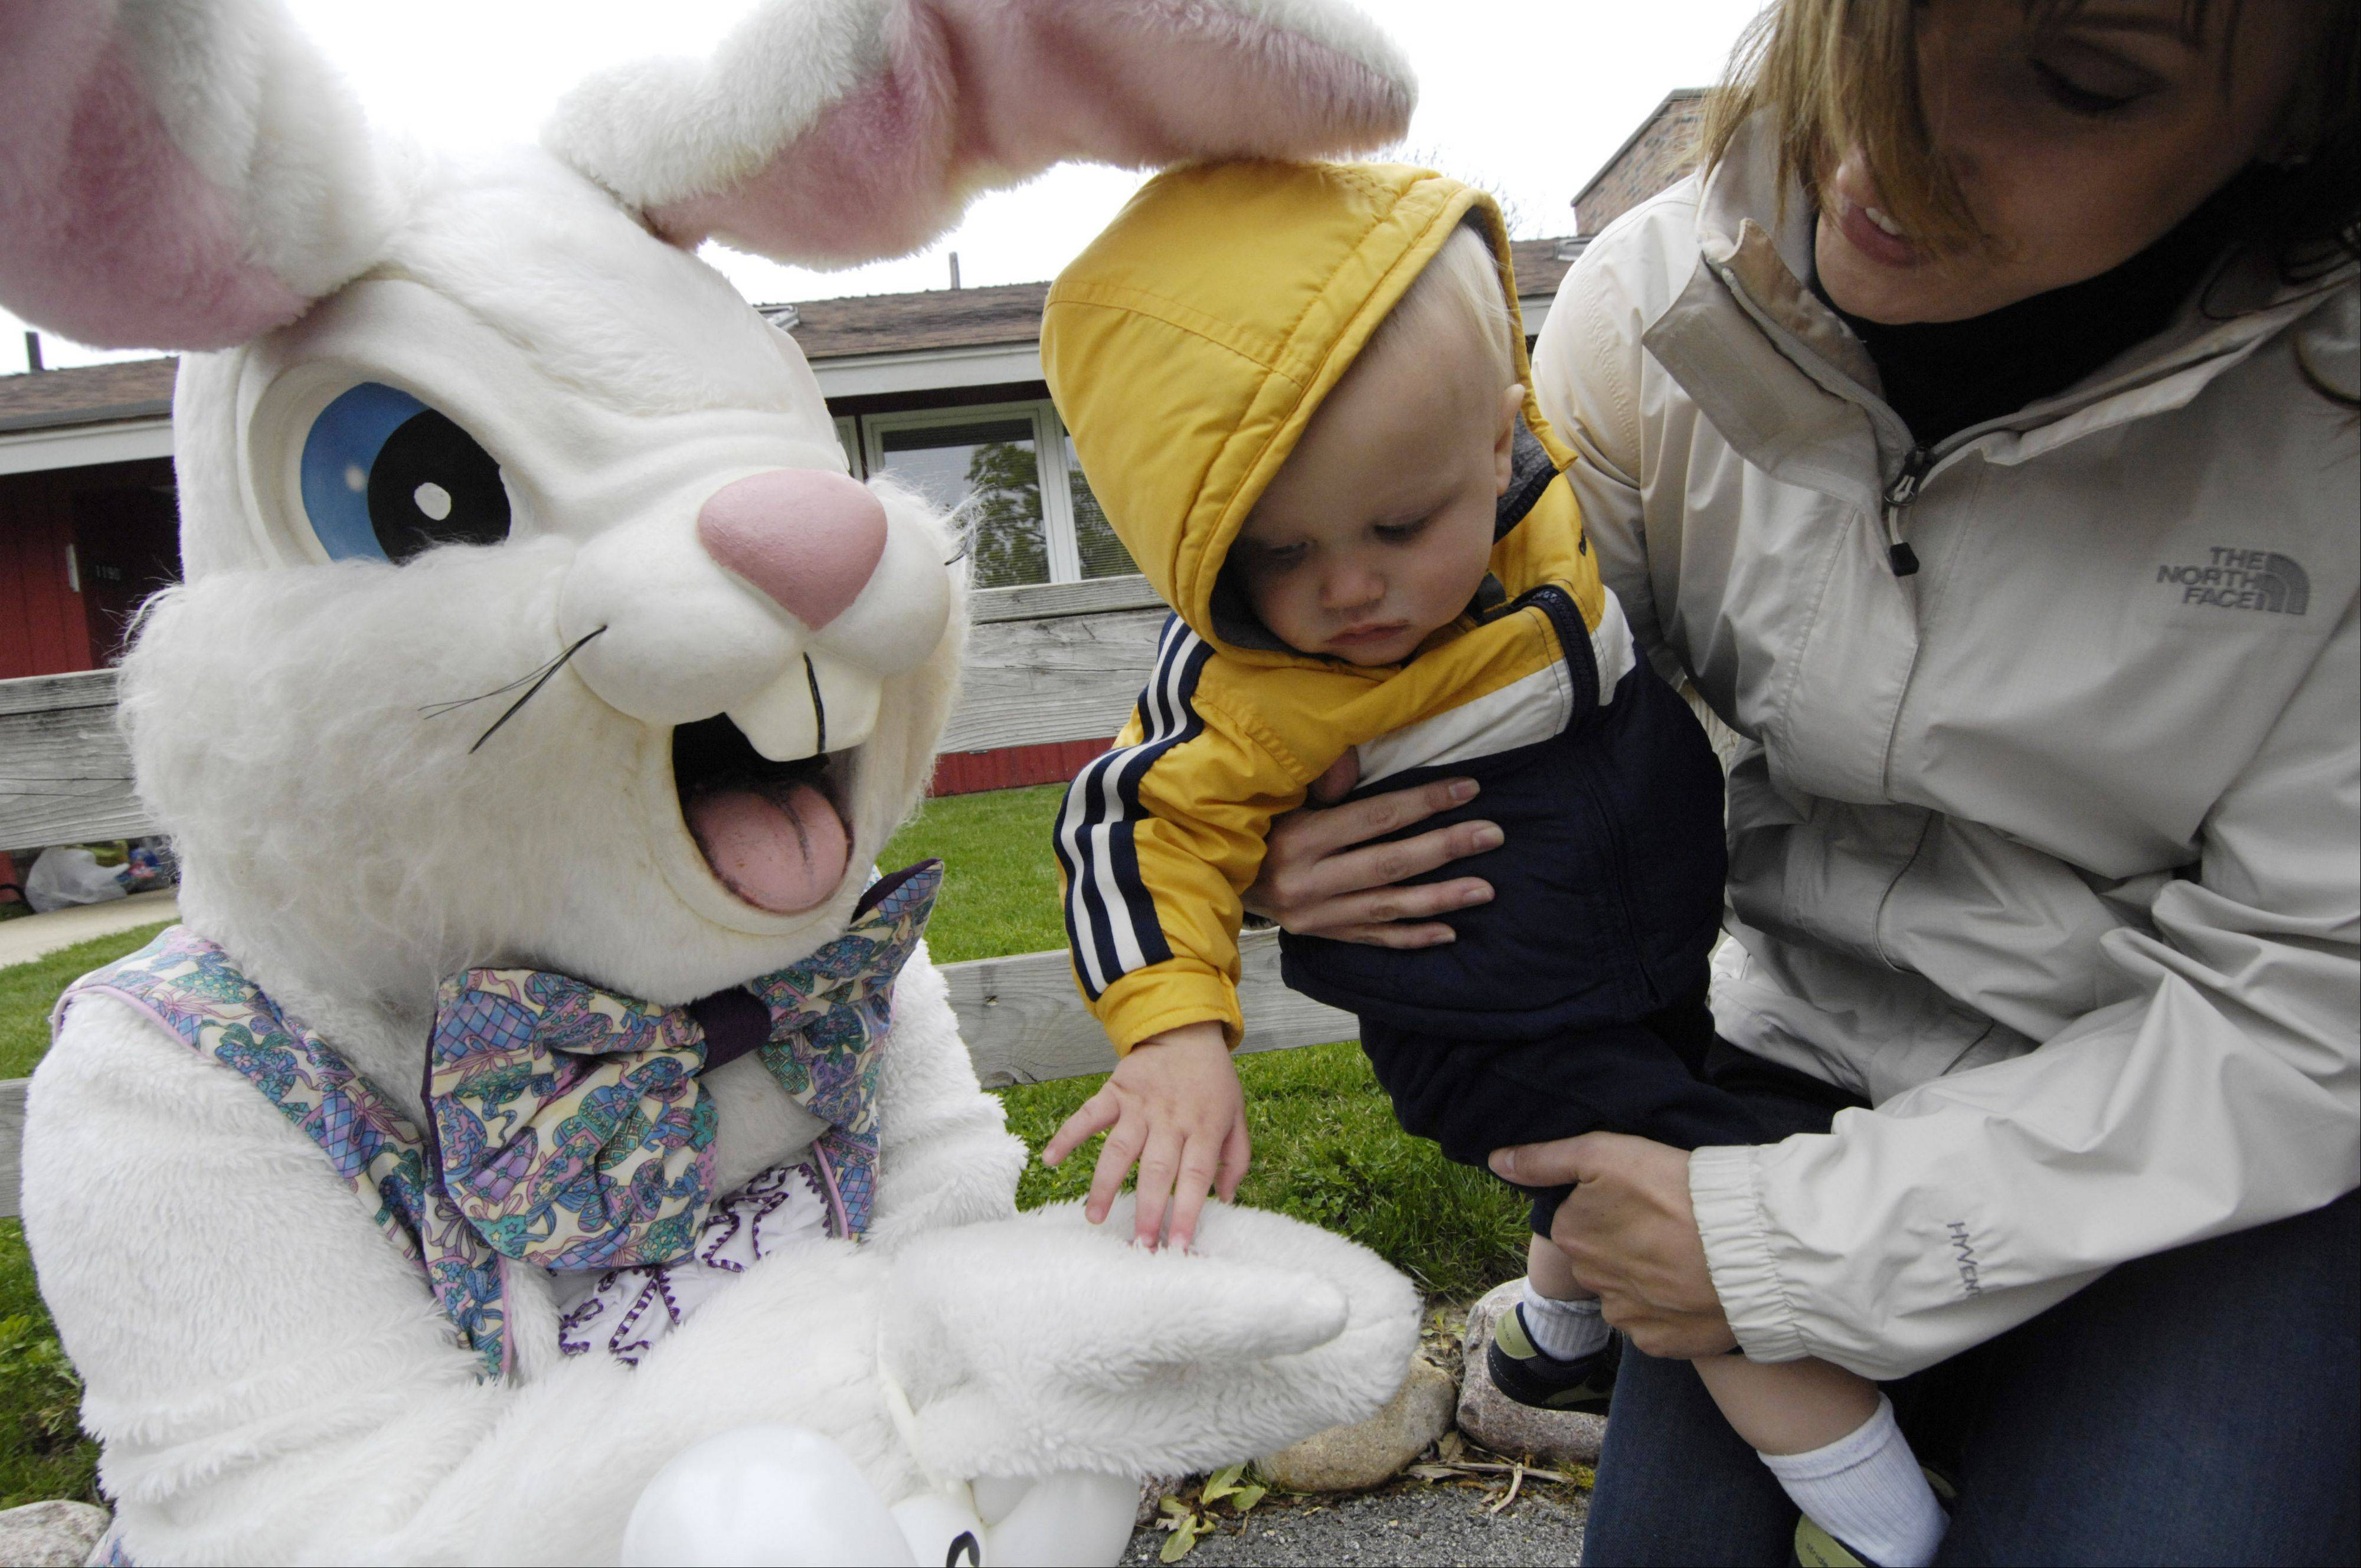 Andrew Gasner, 1, of Huntley, takes a piece of candy from the Easter bunny while being held by his mom, Brittney, at Randall Oaks Park in West Dundee Saturday.